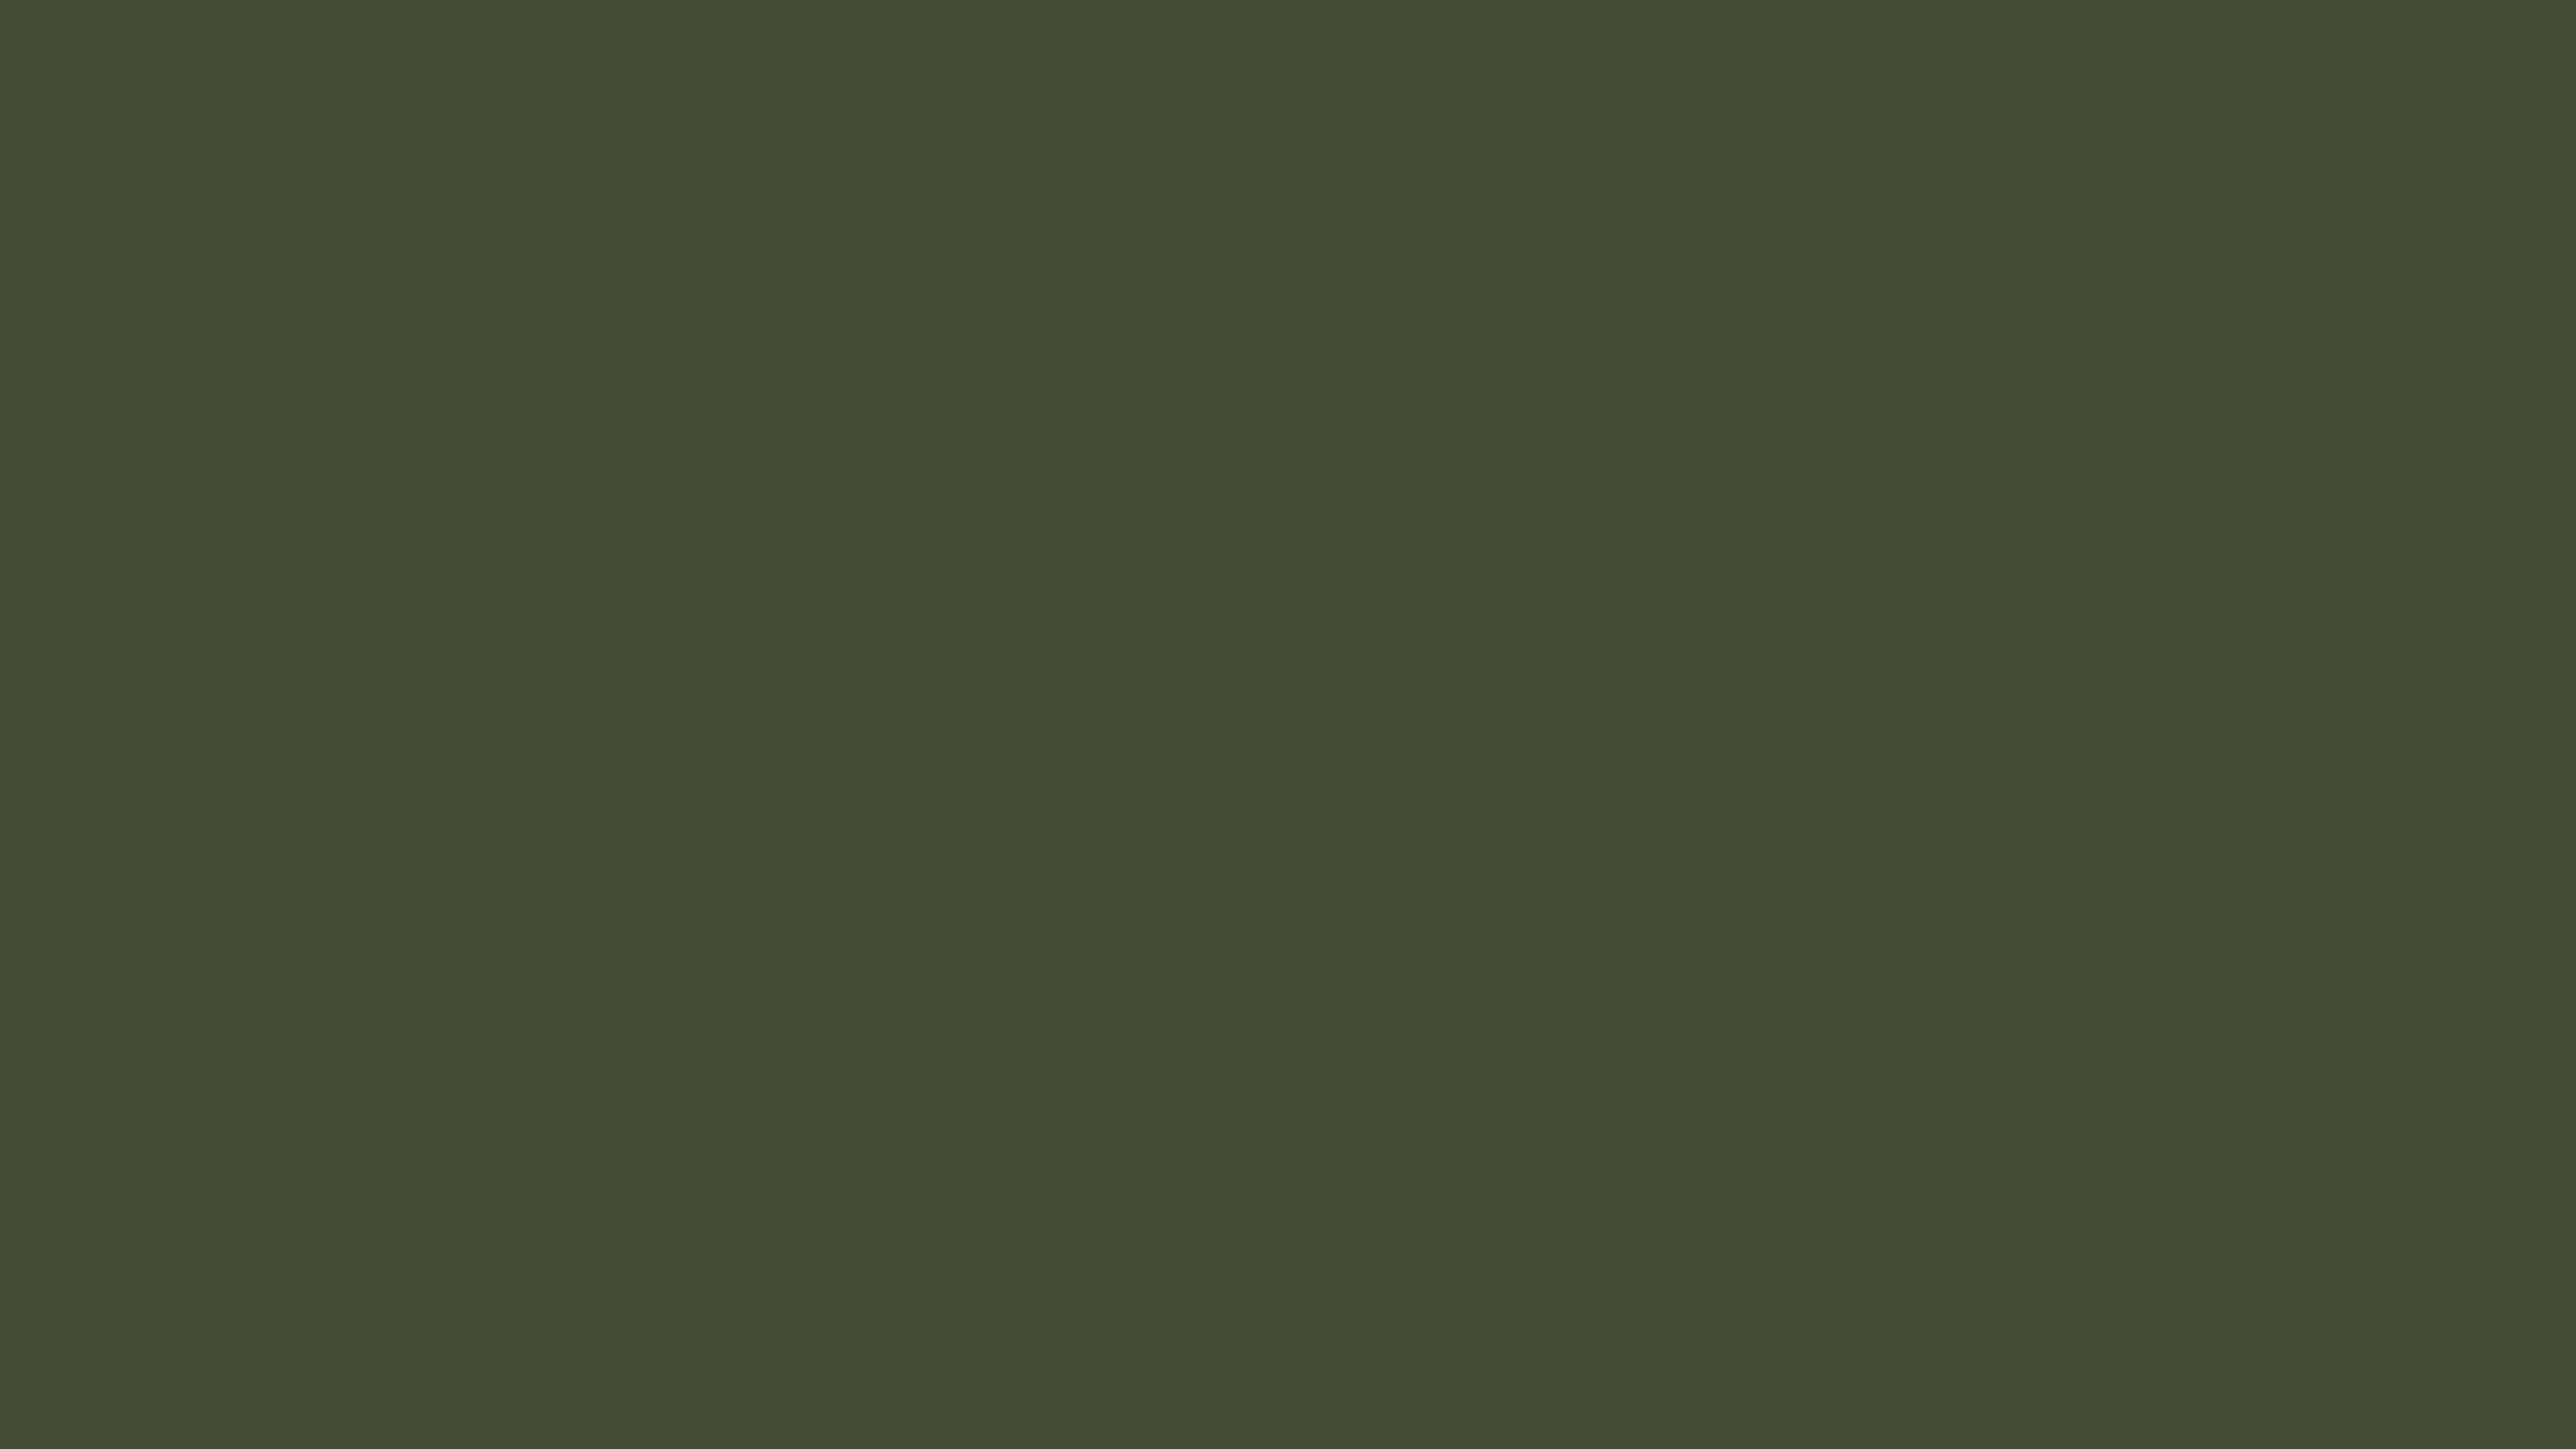 3840x2160 Rifle Green Solid Color Background